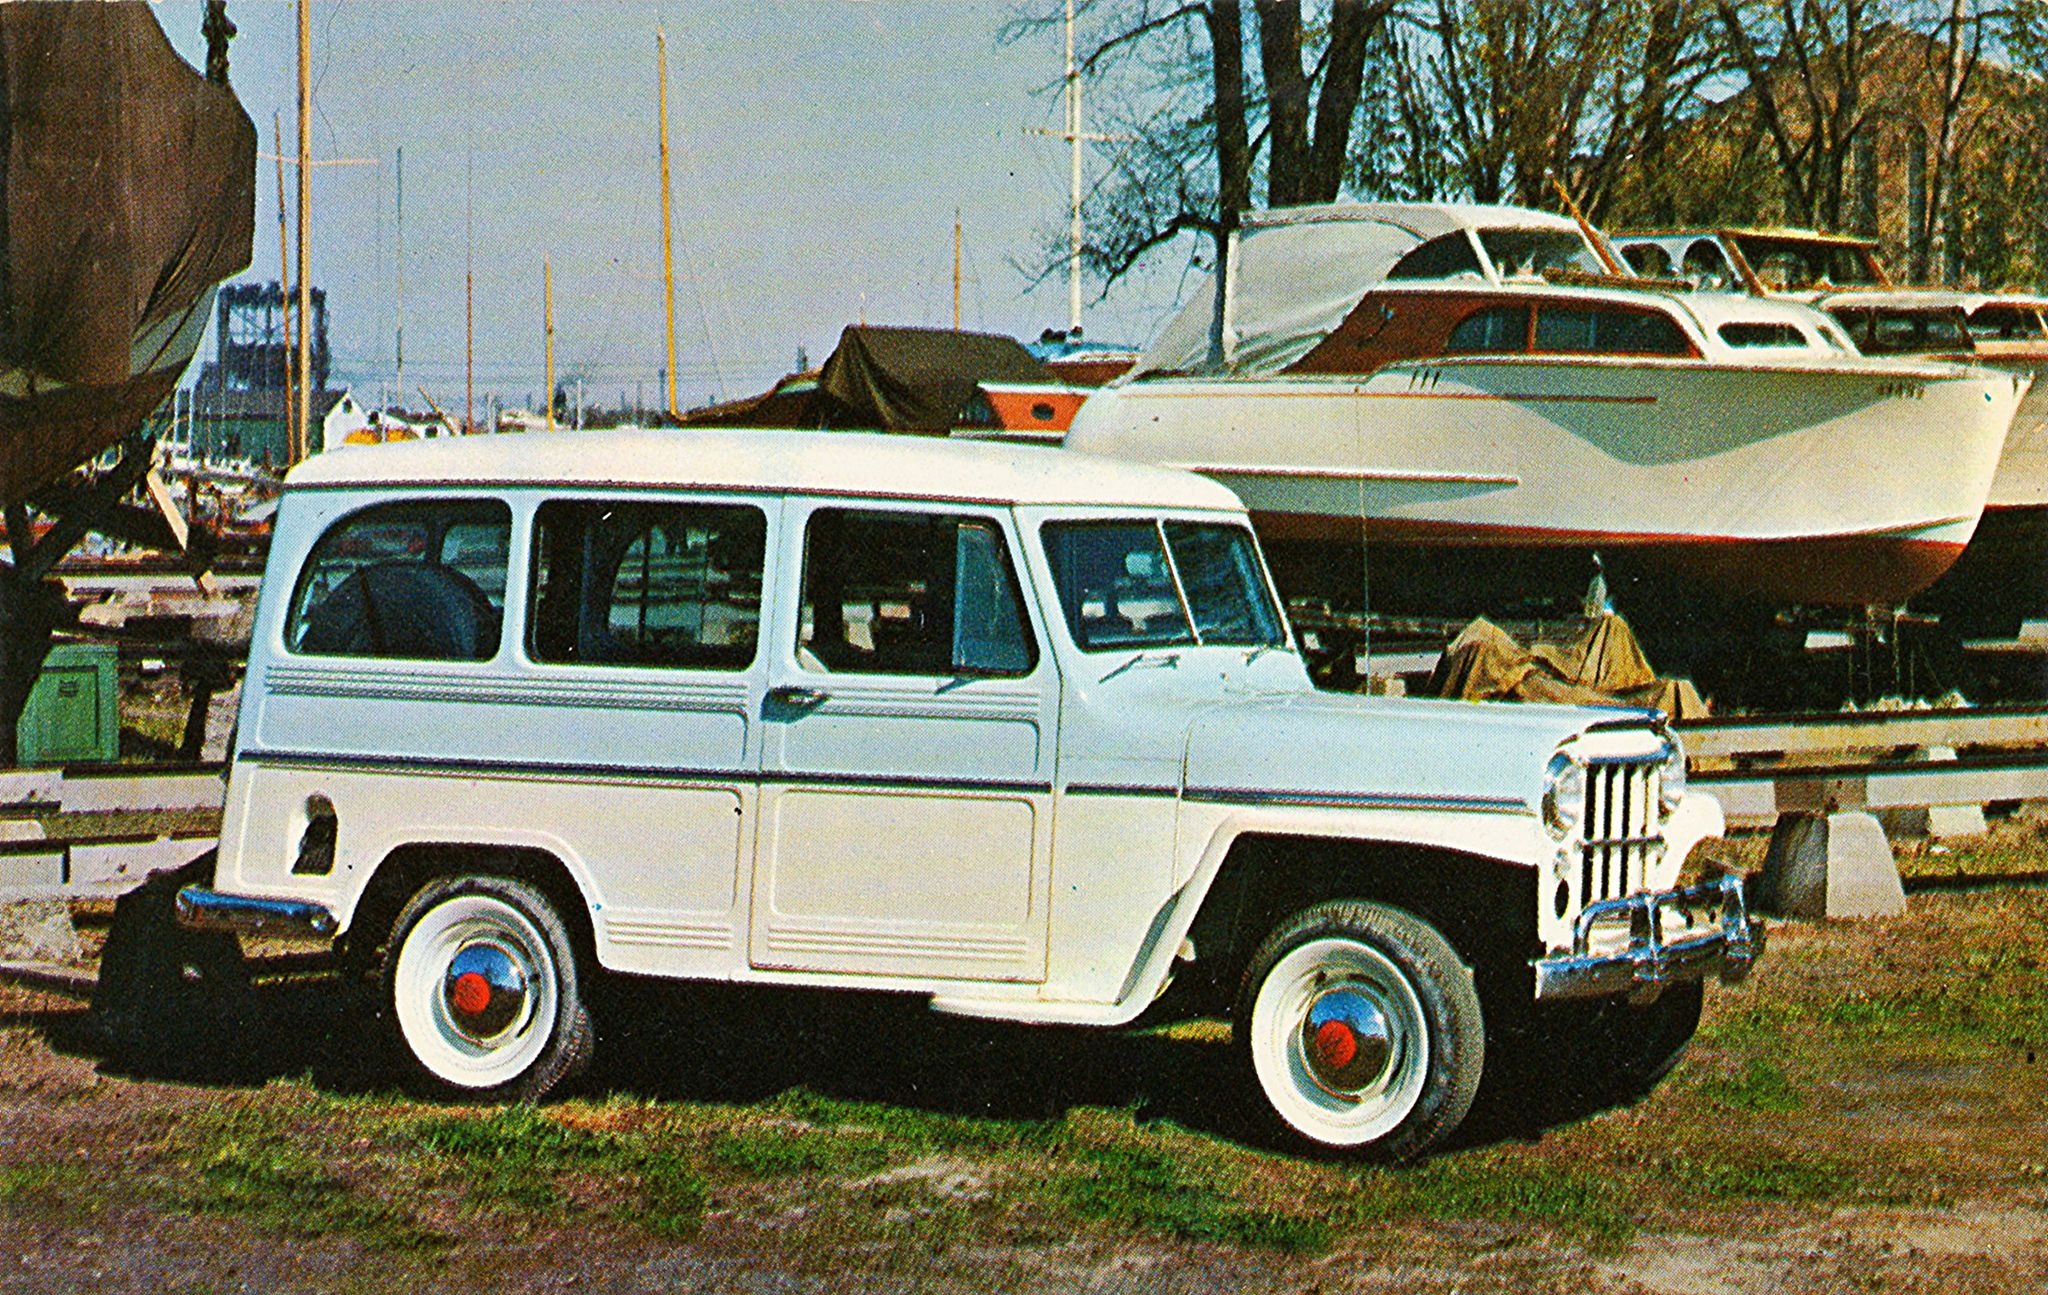 1957 Willys Jeep Utility Wagon Willys Jeep Willys Willys Wagon